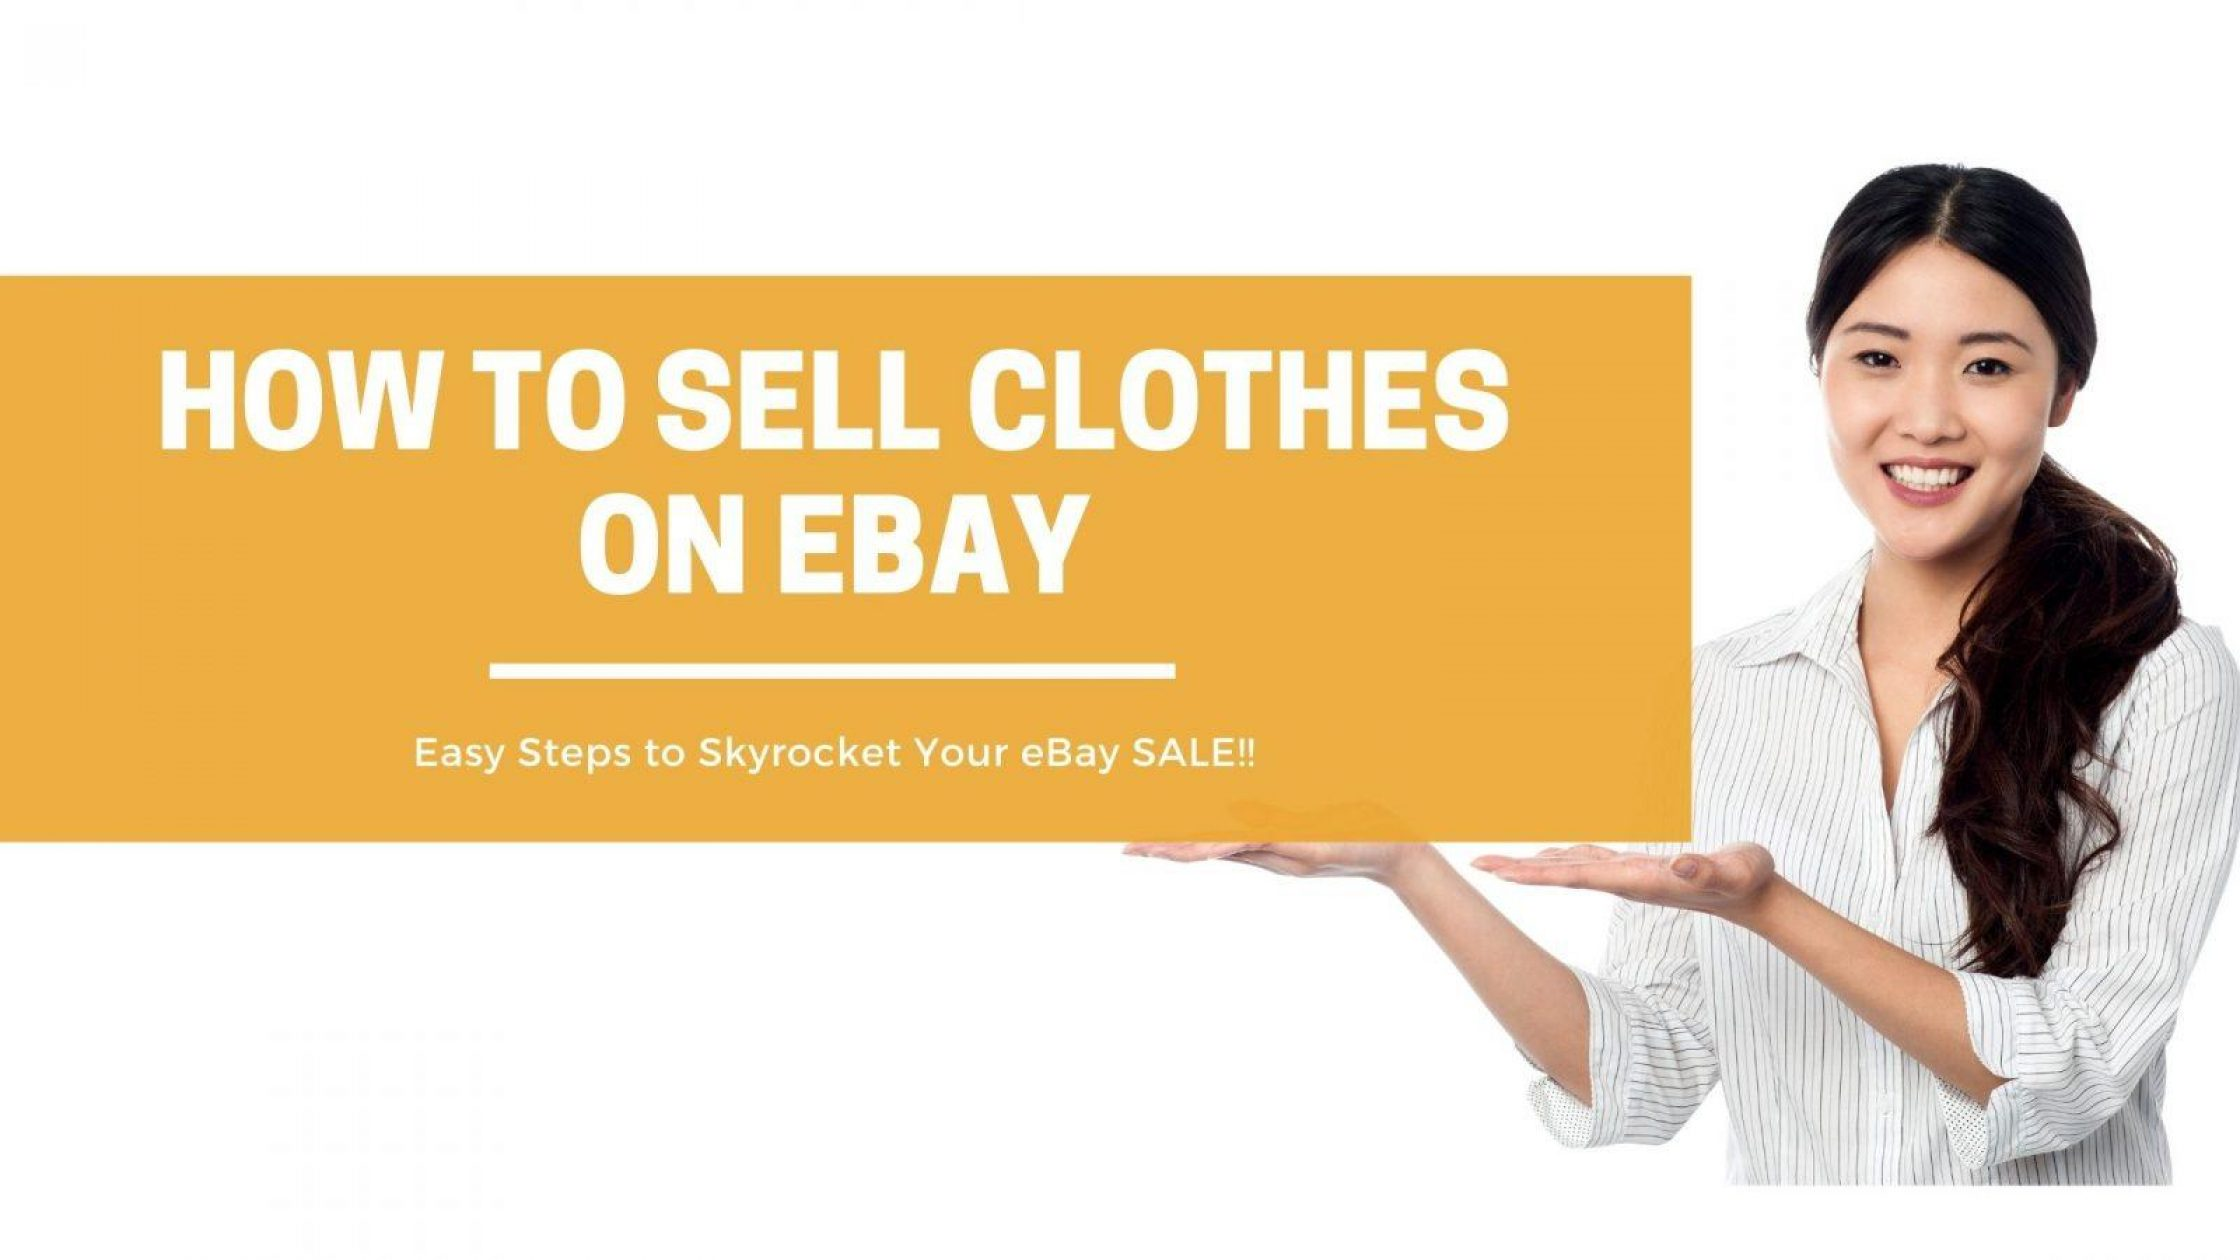 How to Sell Clothes on eBay – A Definitive Guide